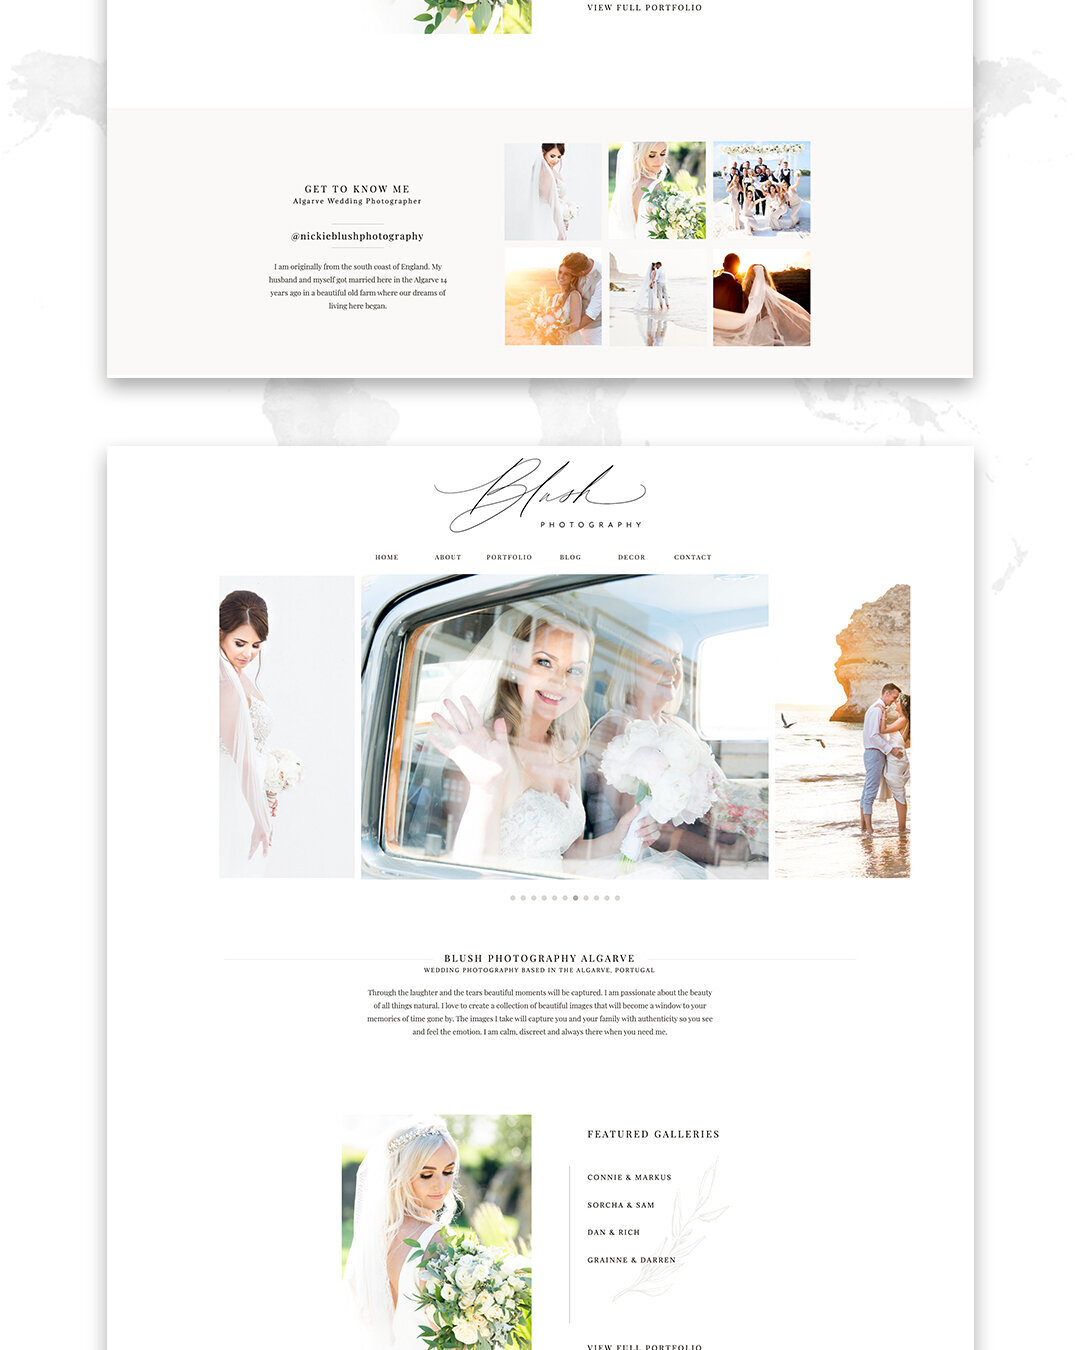 Showit-template-help-moreno-collective-blush